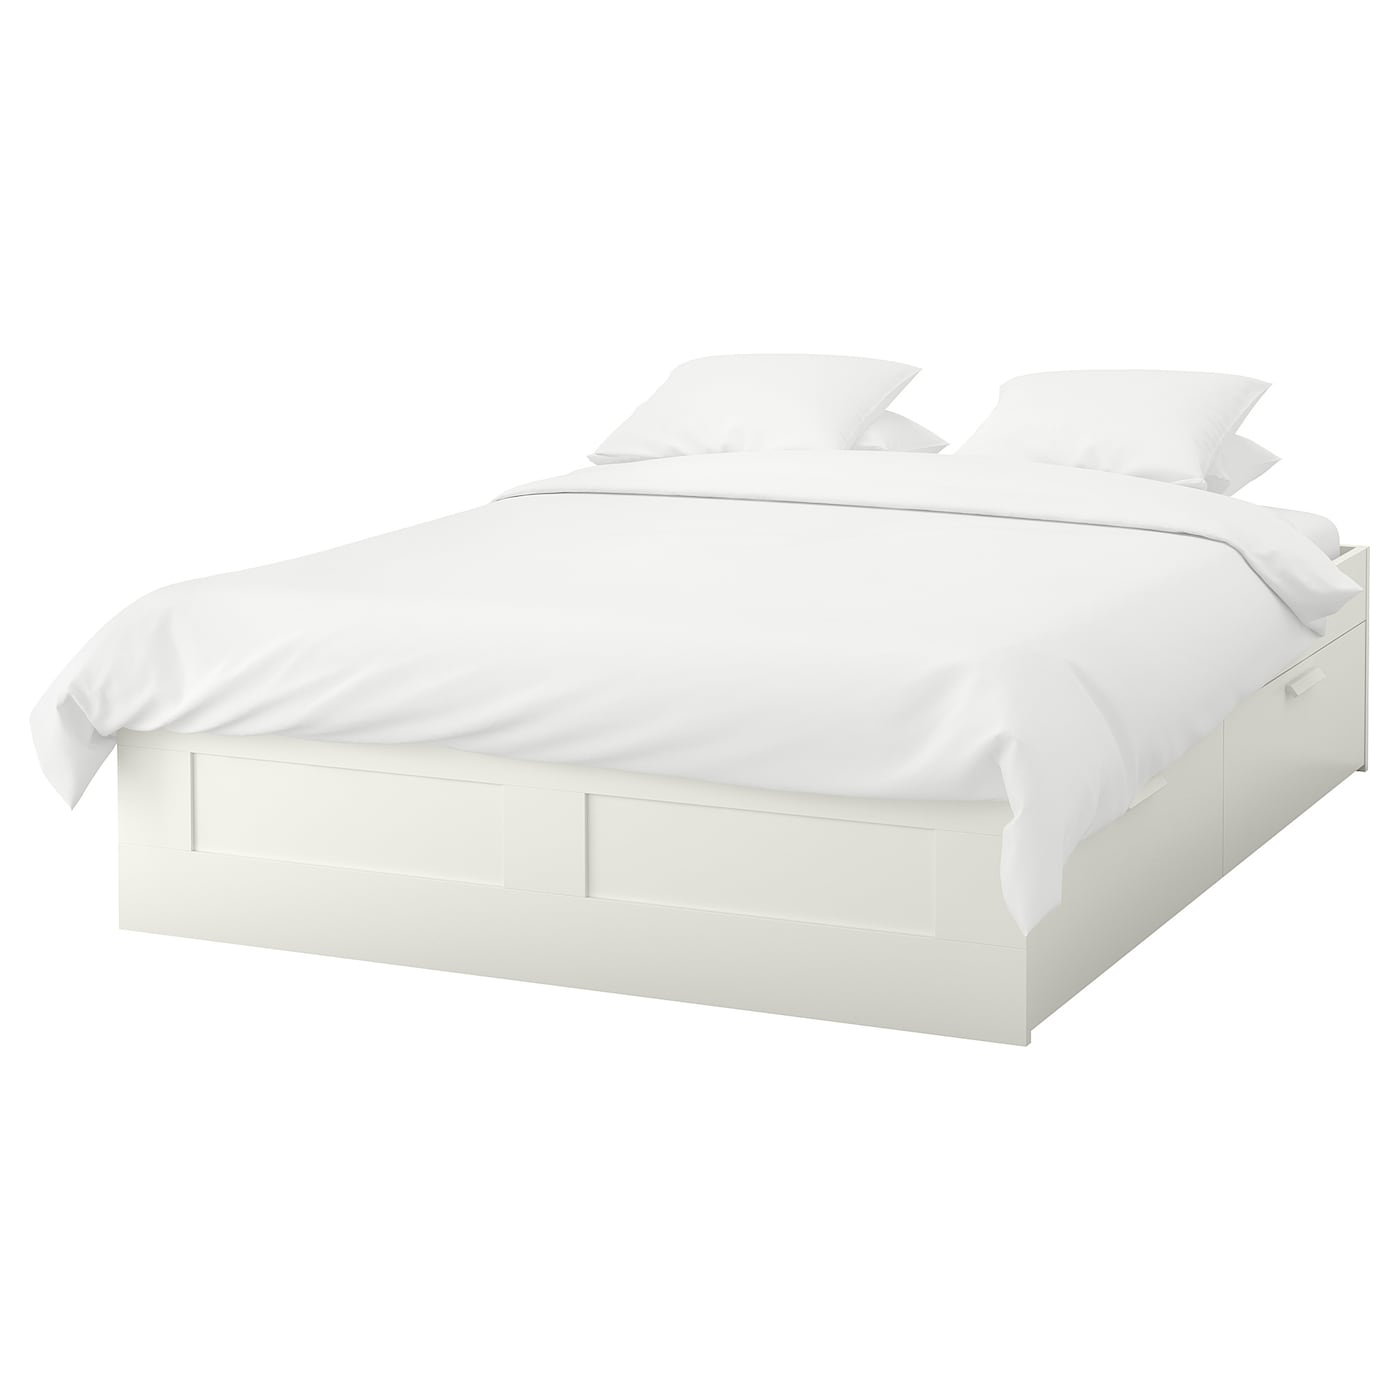 brimnes cadre lit avec rangement blanc l nset 140x200 cm ikea. Black Bedroom Furniture Sets. Home Design Ideas